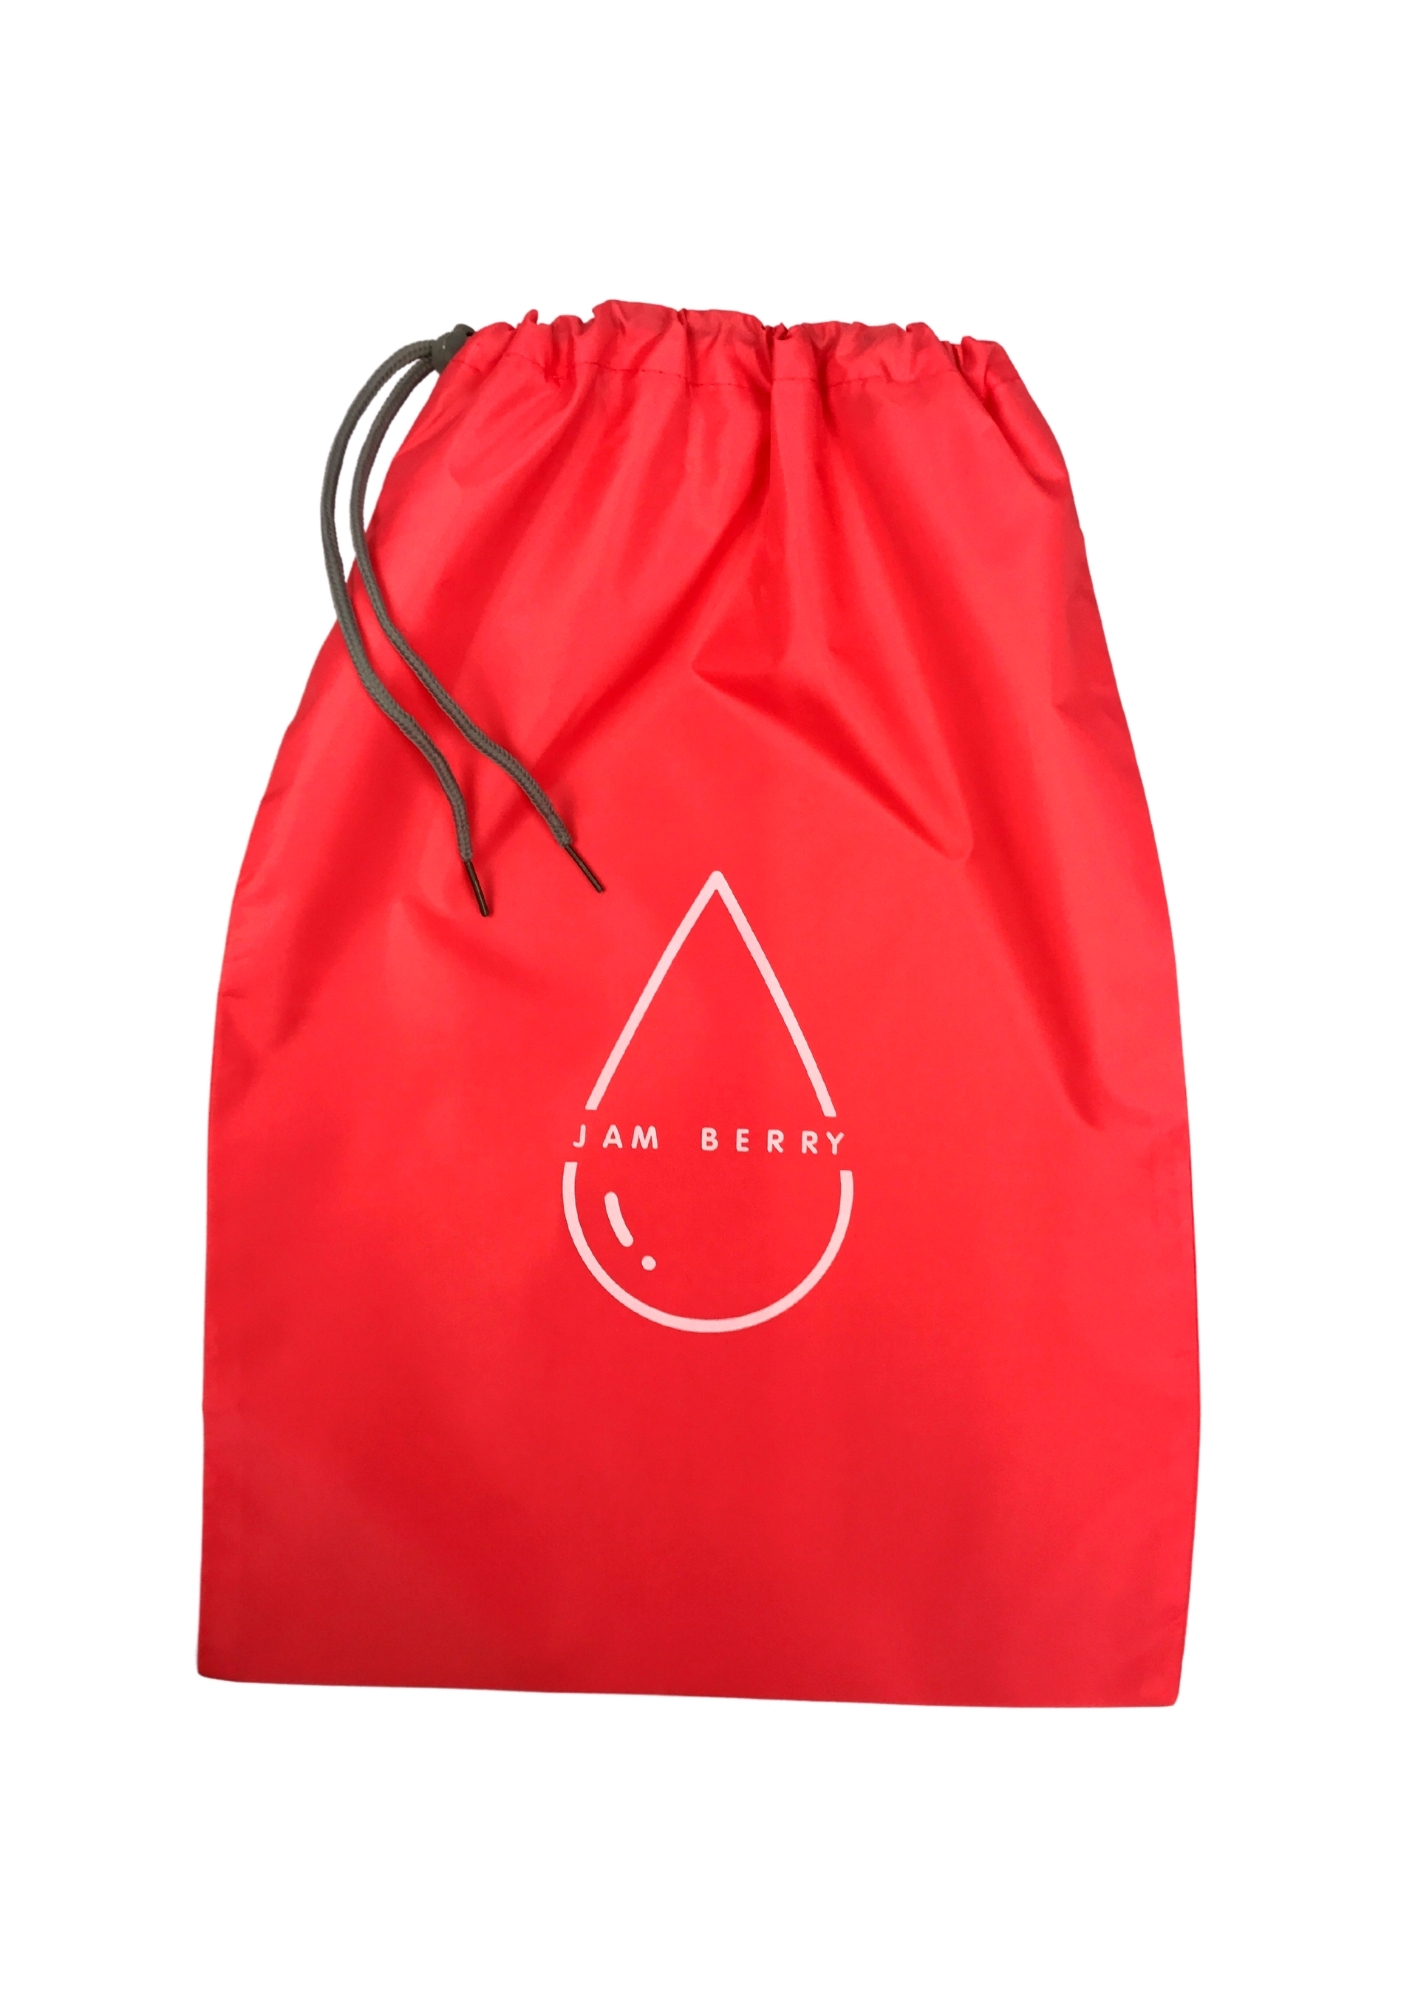 Jam Berry 100% Waterproof drawstring Wet Stuff Bag Red